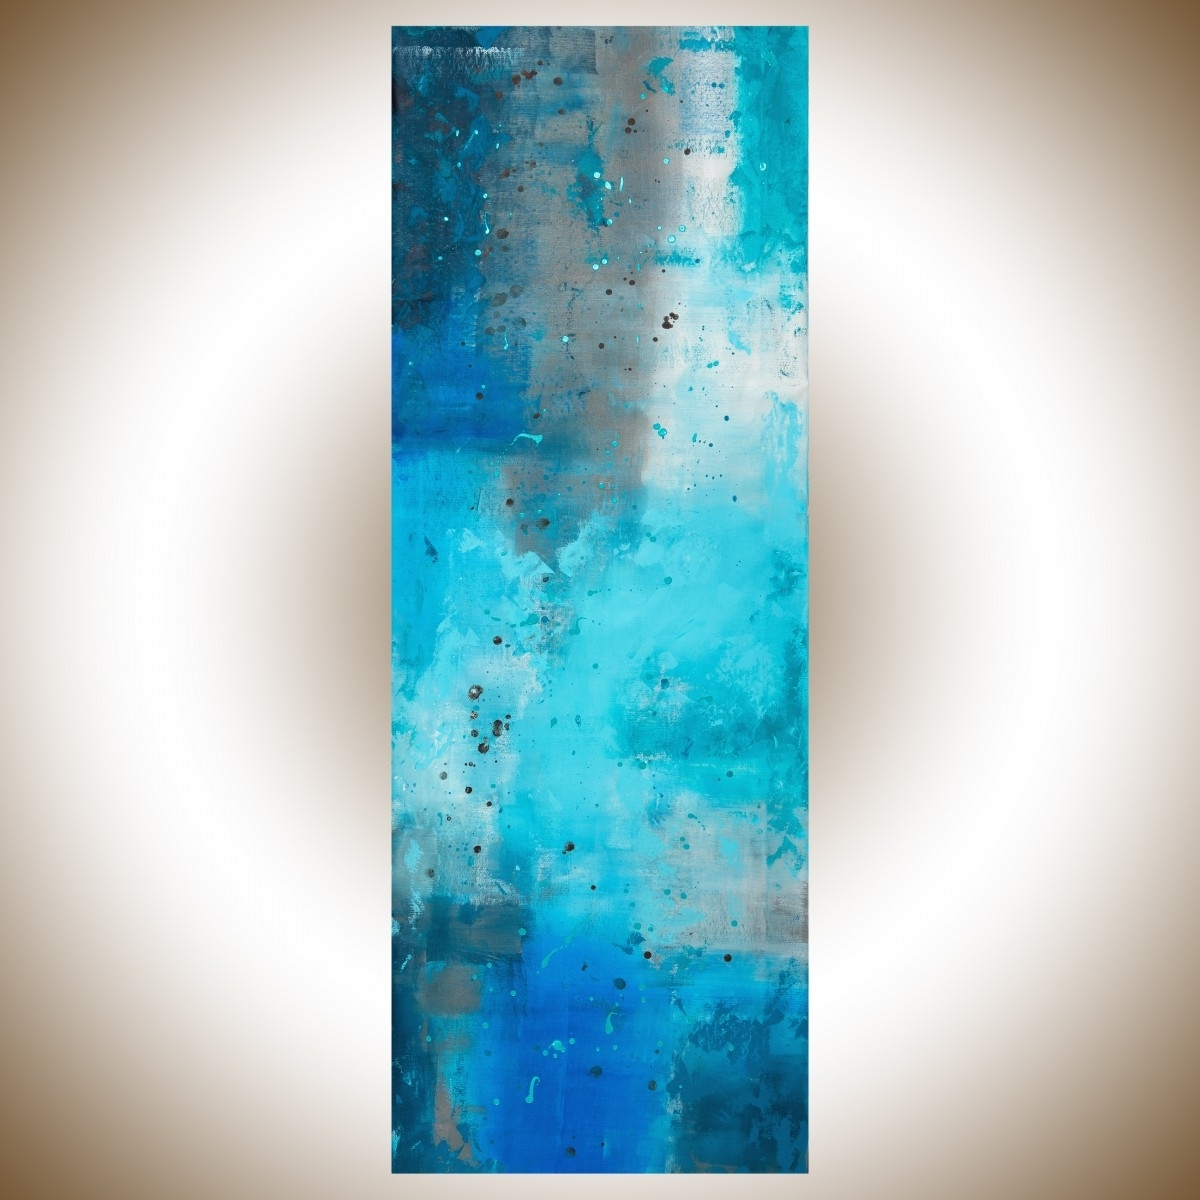 "The Mistqiqigallery 70""x24"" Un Stretched Canvas Original Pertaining To Recent Turquoise And Black Wall Art (Gallery 13 of 15)"